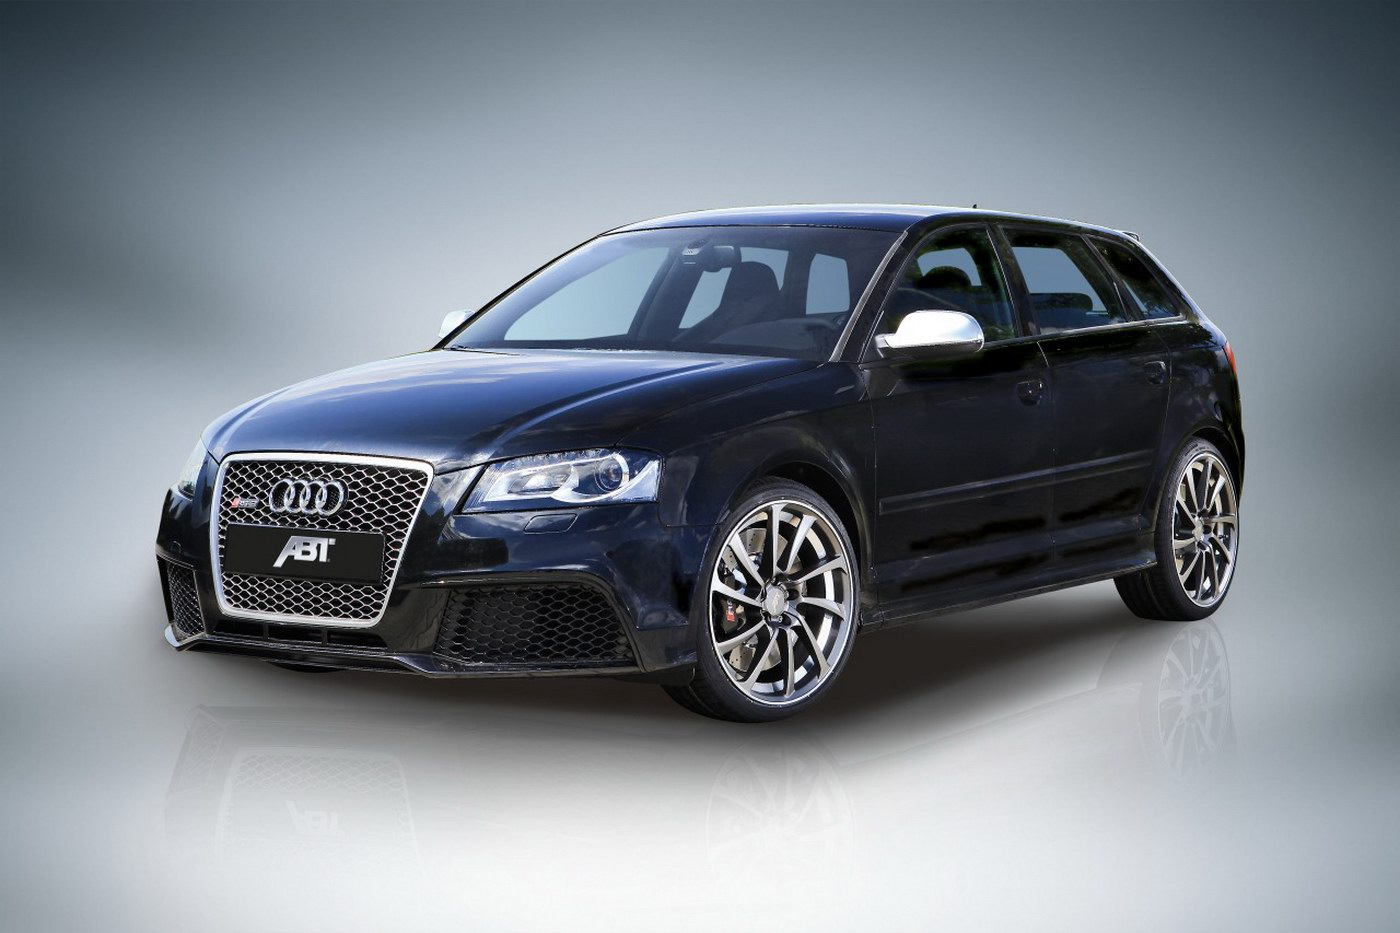 ABT do Audi RS3 Sportback nacpal 470 koní 3